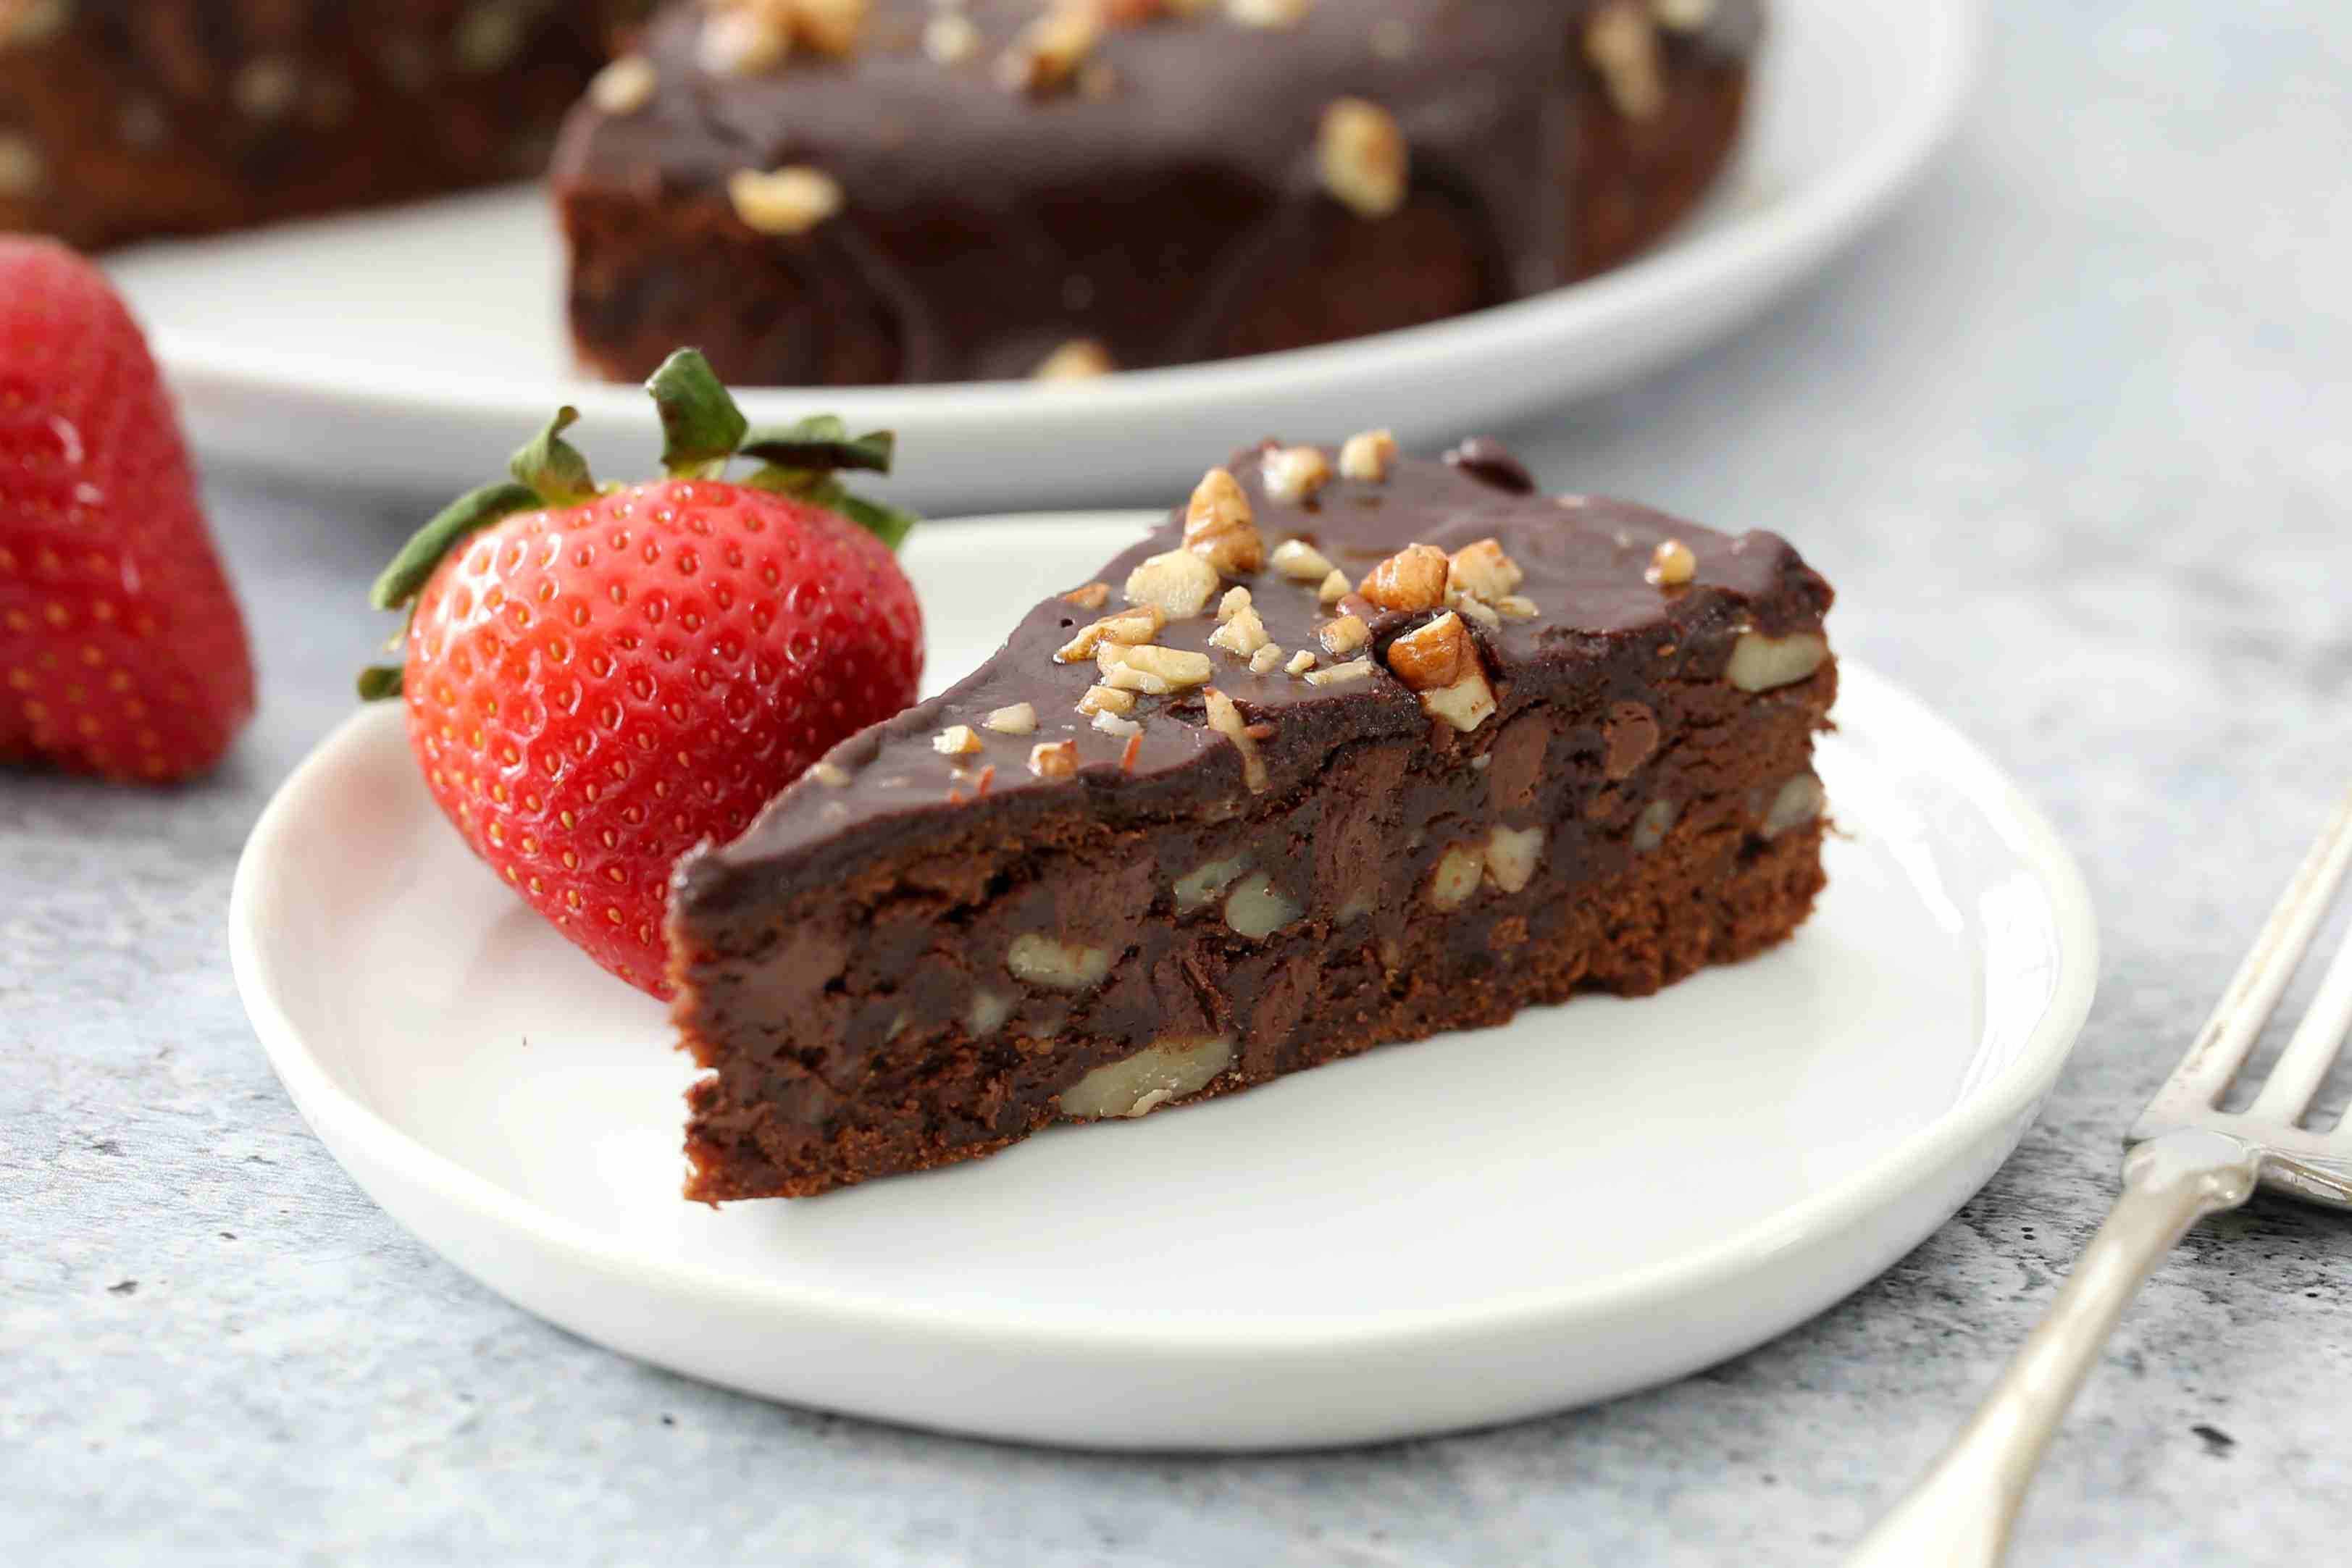 Instant Pot brownies sliced on a plate.